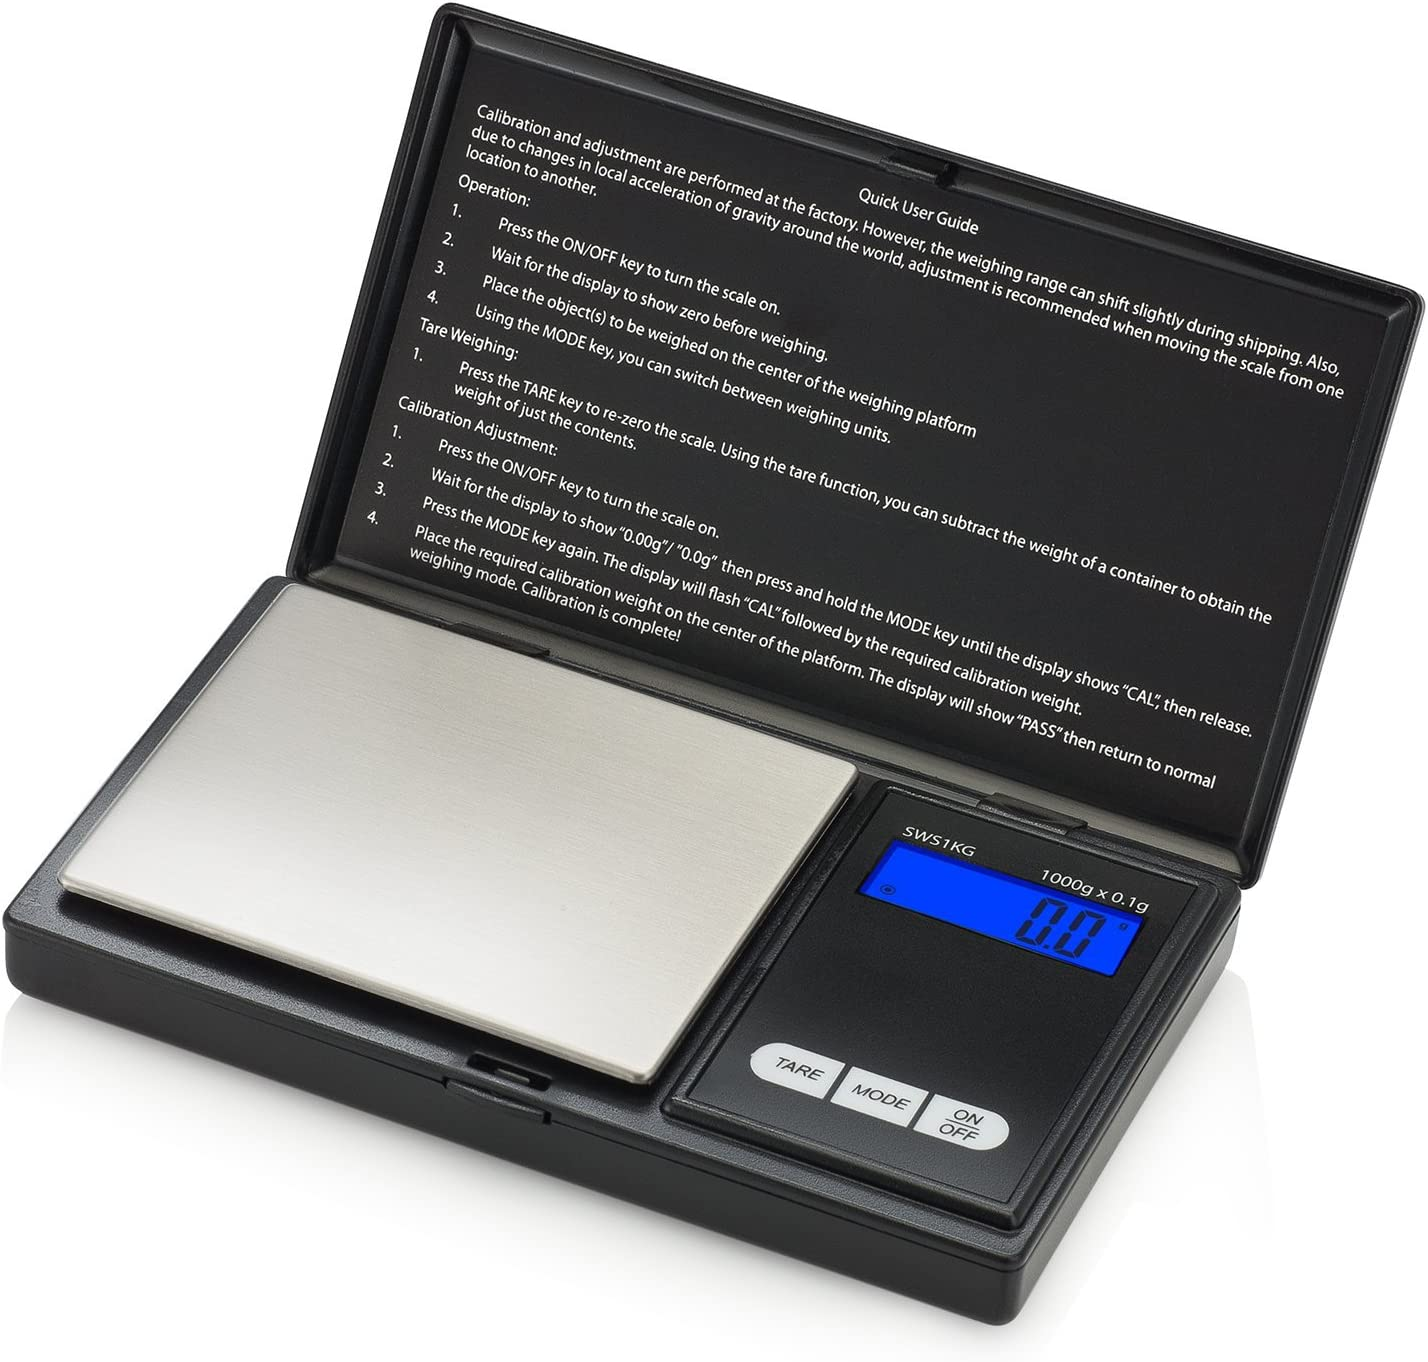 Smart Weigh Digital Pocket Gram Scale, 1000 x 0.1 Grams, Small Digital Scales Grams and Ounces, Jewelry Scale, Portable Travel Food Scale, Kitchen Scale Battery Included